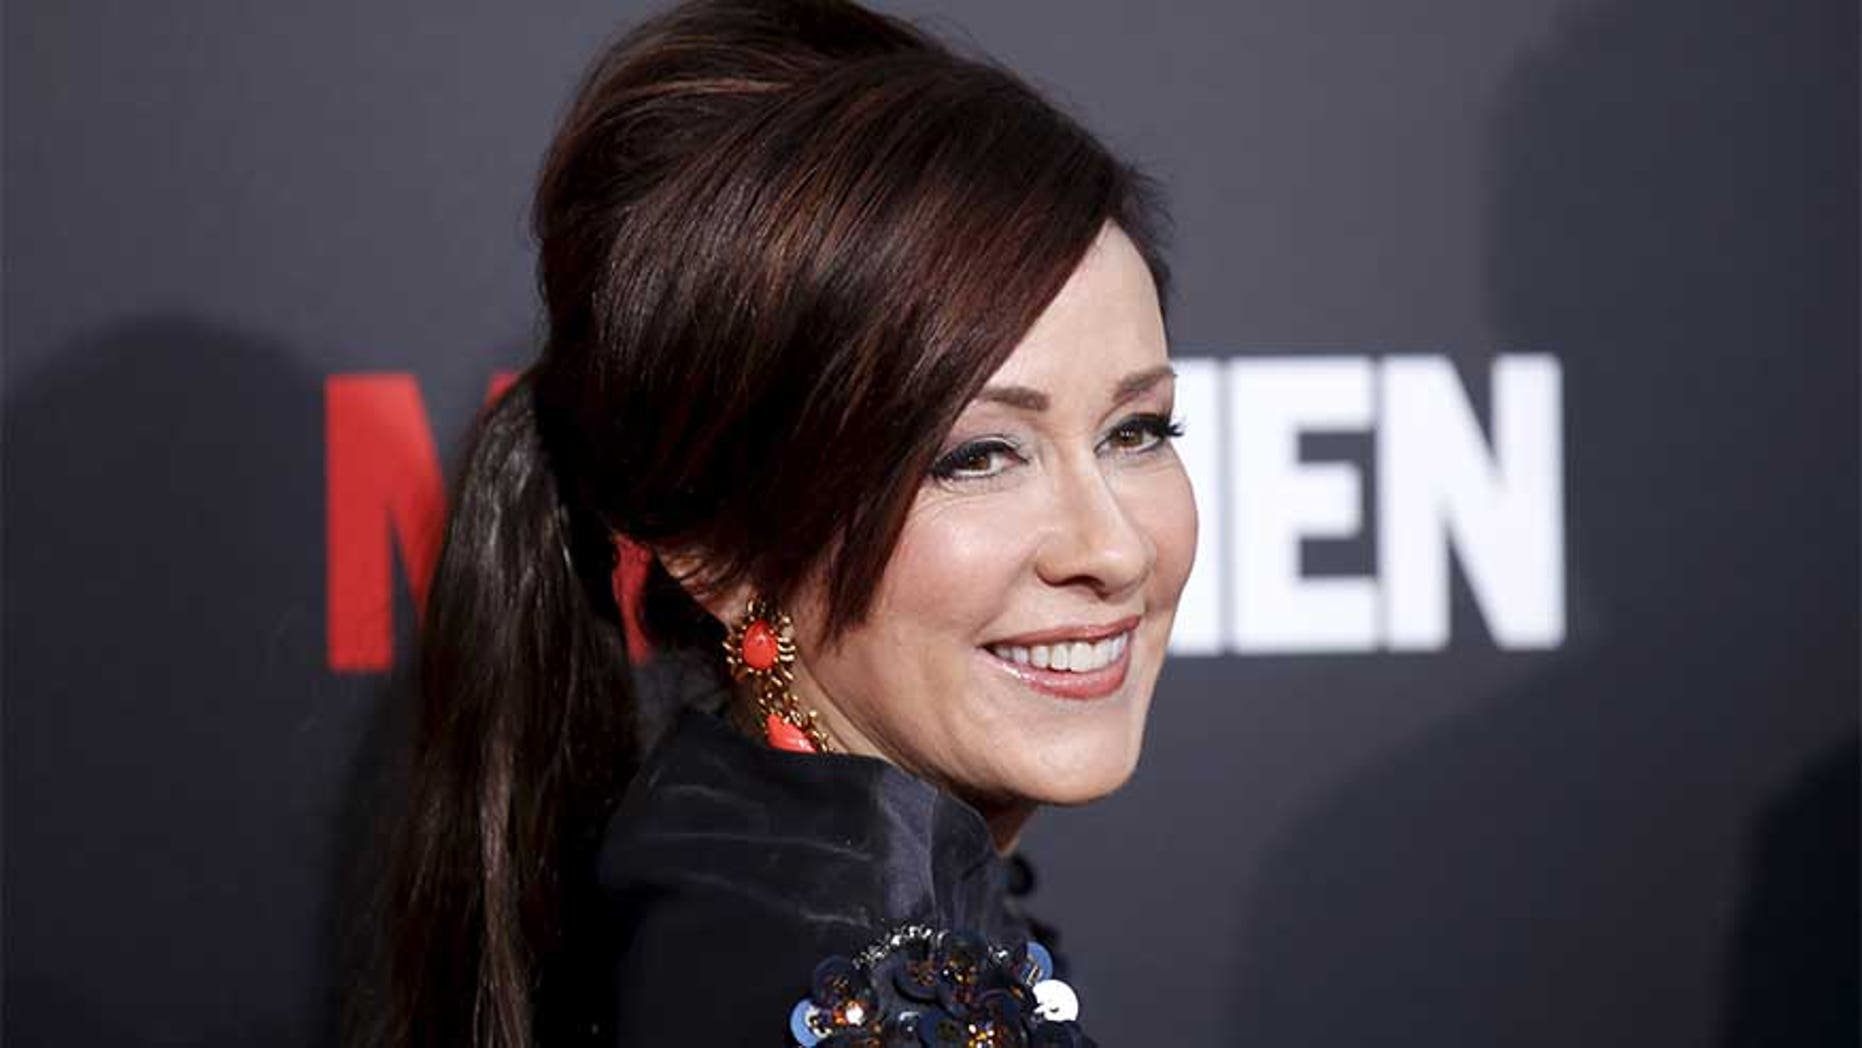 "Actress Patricia Heaton poses at the ""Mad Men"" Black and Red Ball to celebrate the final seven episodes of the AMC television series in Los Angeles Wednesday, March 25, 2015. REUTERS/Danny Moloshok - RTR4UWFR"